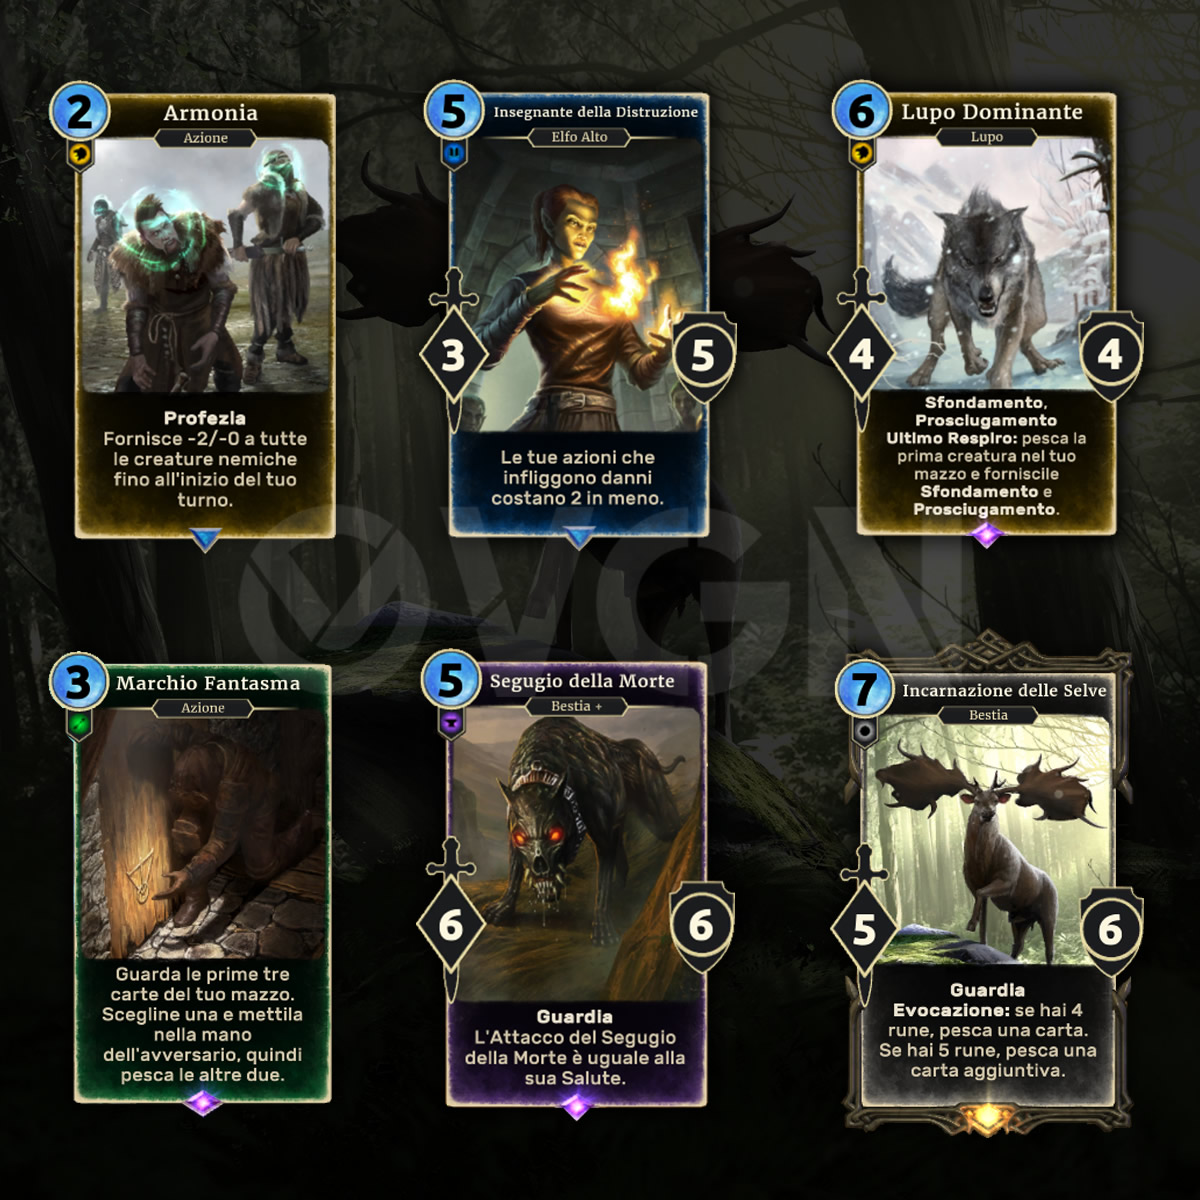 The Elder Scrolls: Legends - Scintilla Gelida